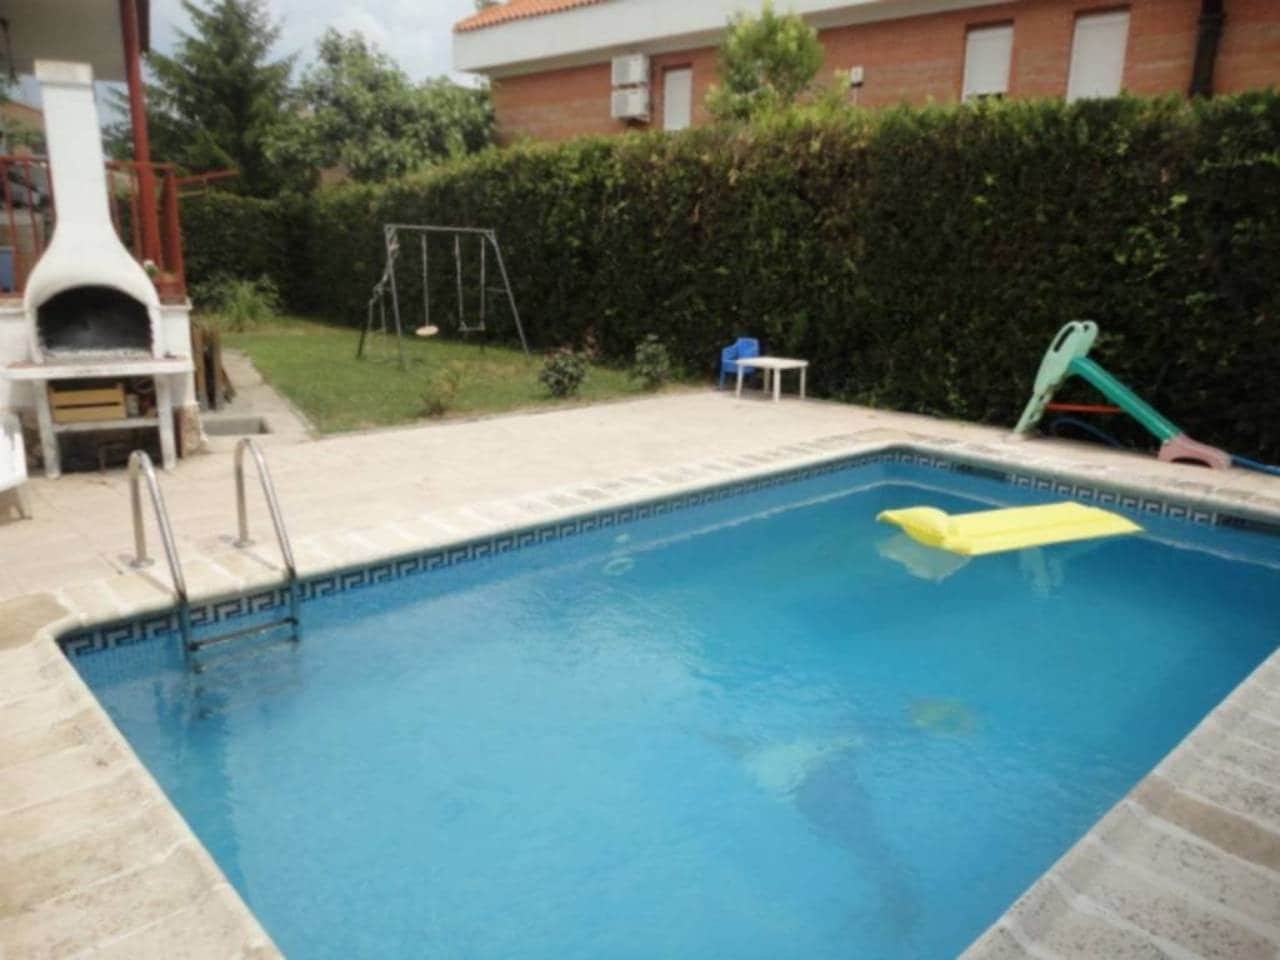 3 bedroom Villa for sale in Alpicat with pool garage - € 239,000 (Ref: 4973280)